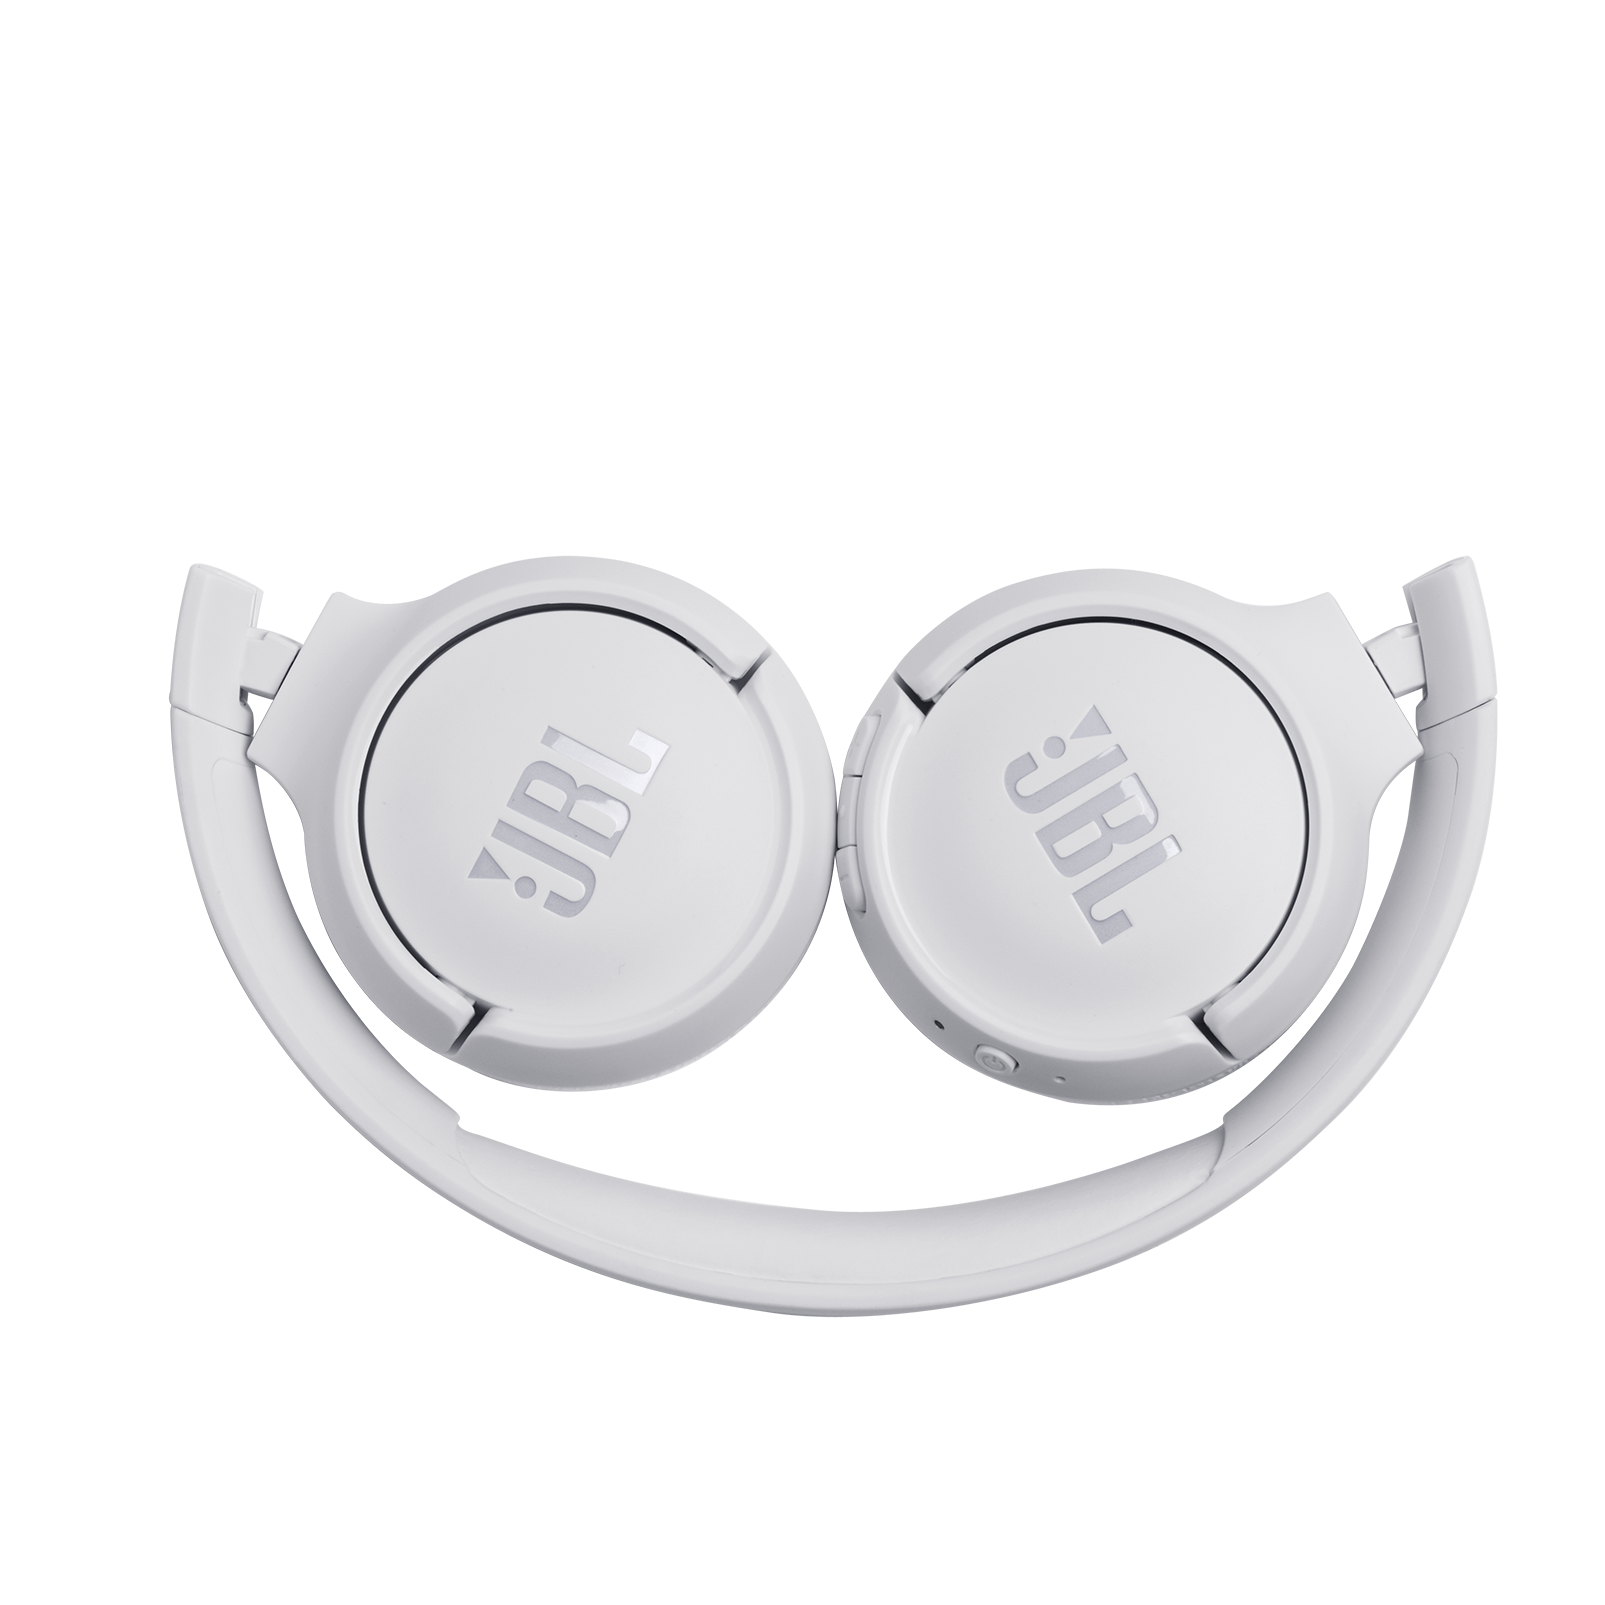 JBL TUNE 500BT - White - Wireless on-ear headphones - Detailshot 3